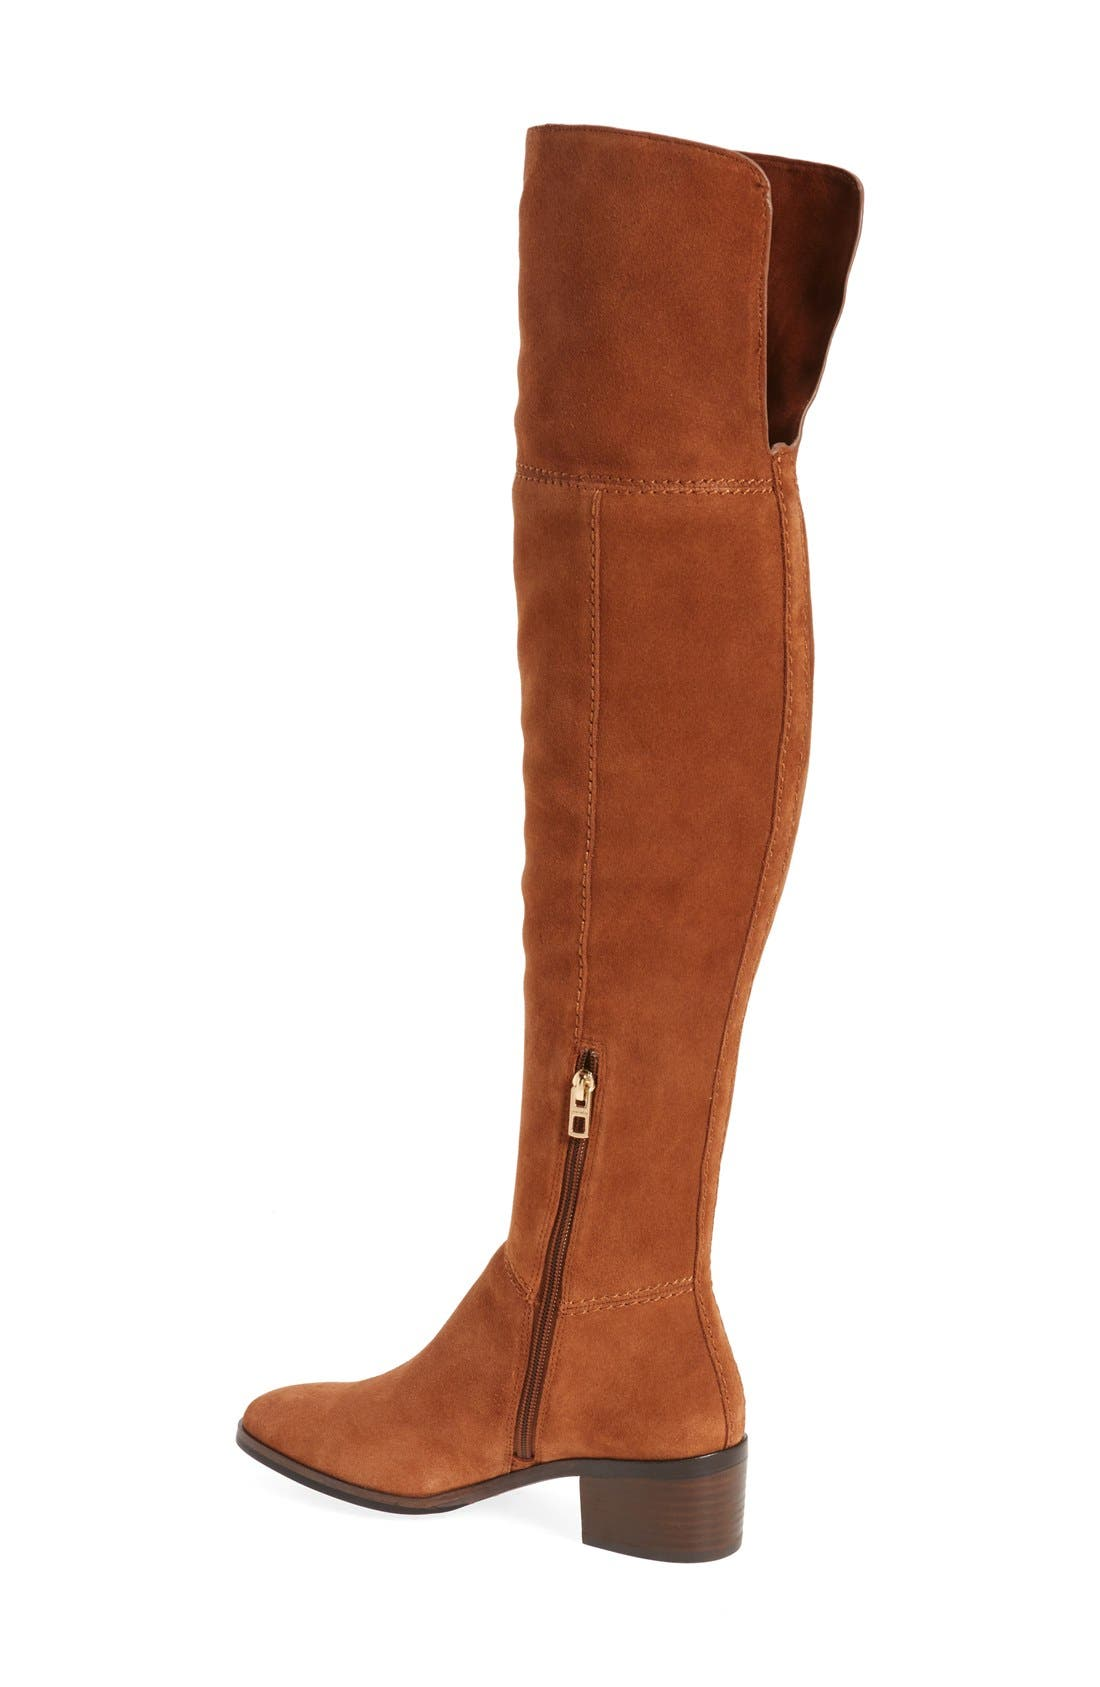 Alternate Image 2  - COACH 'Lucia' Cuffable Over the Knee Boot (Women)